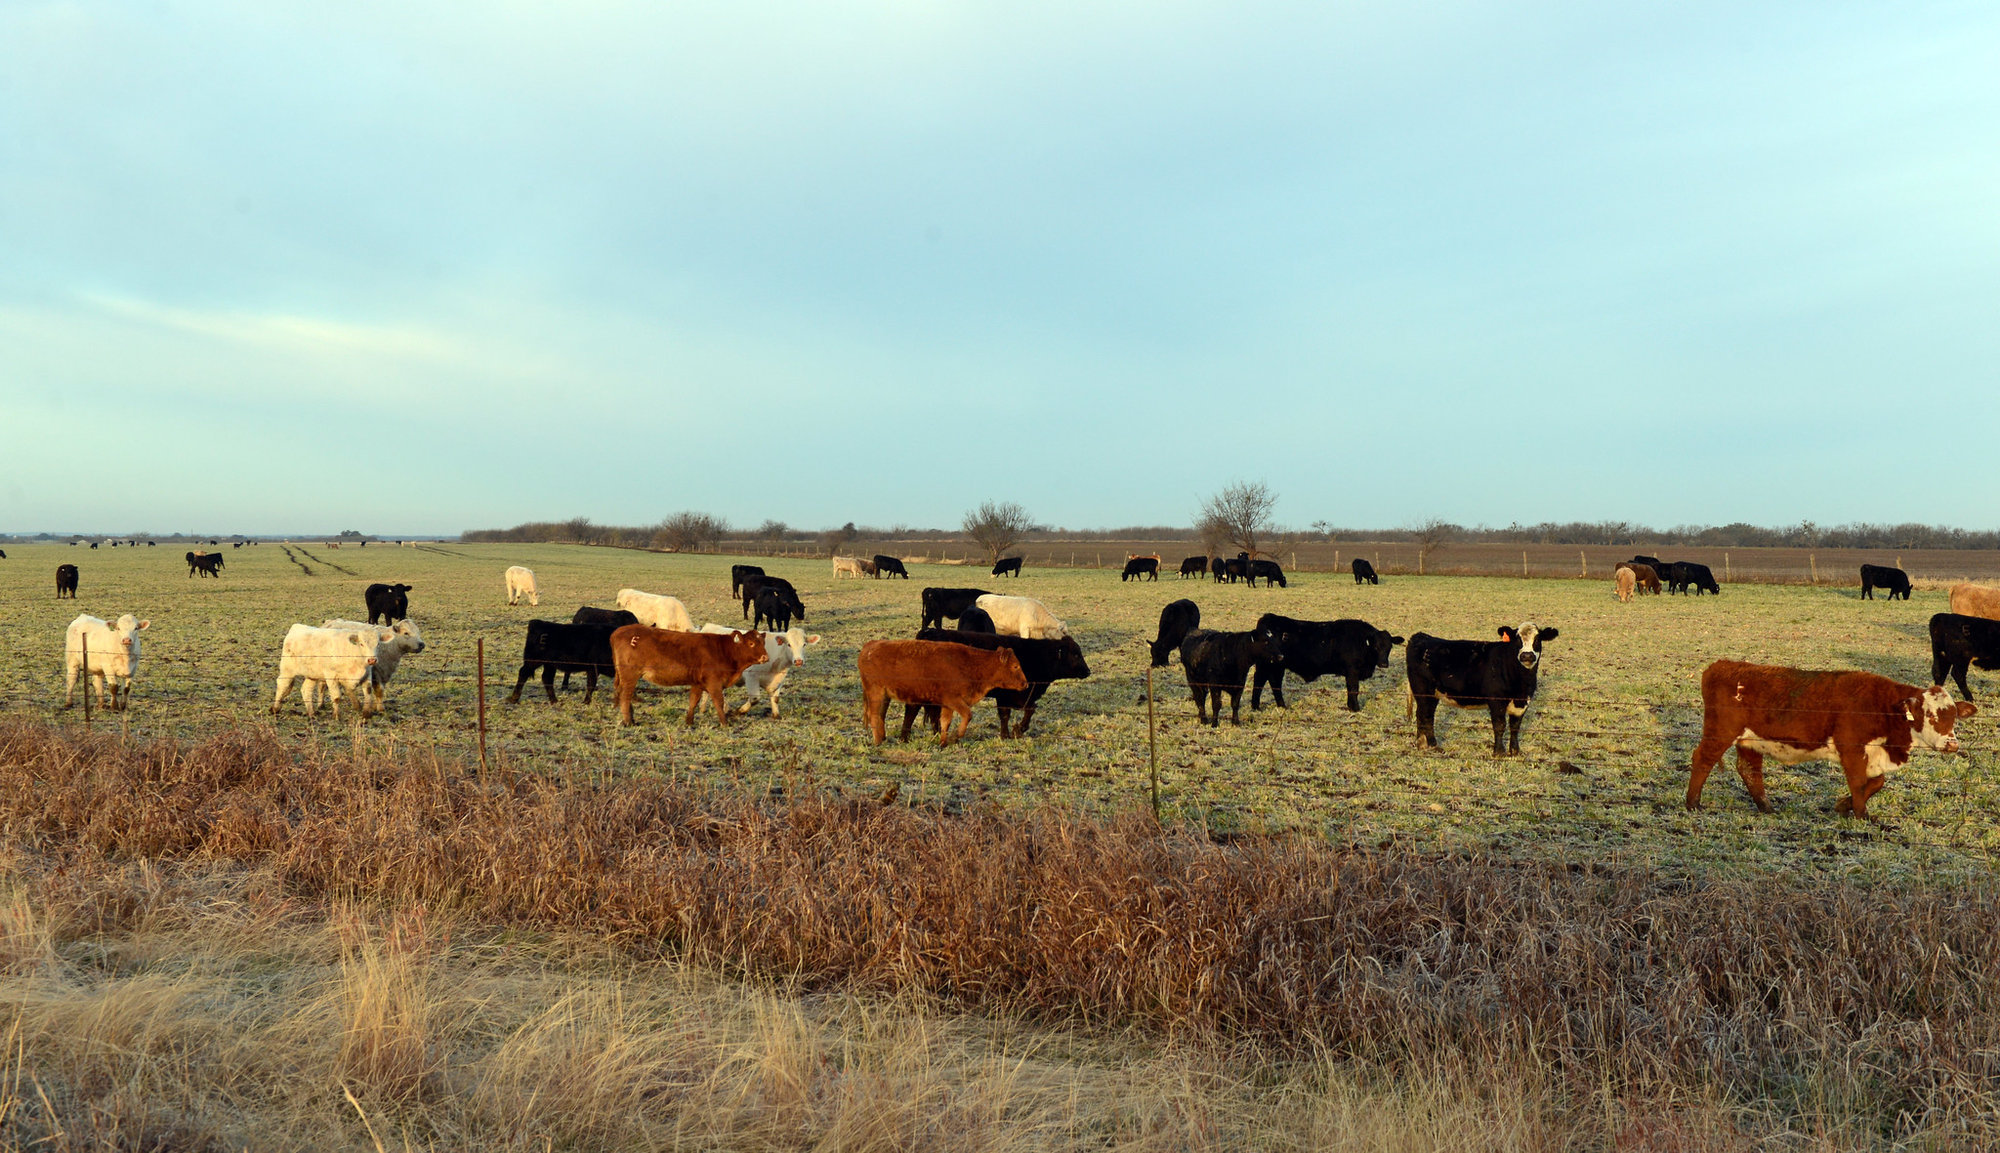 Photo of Cattle Grazing in a Field, Coleman County, Texas